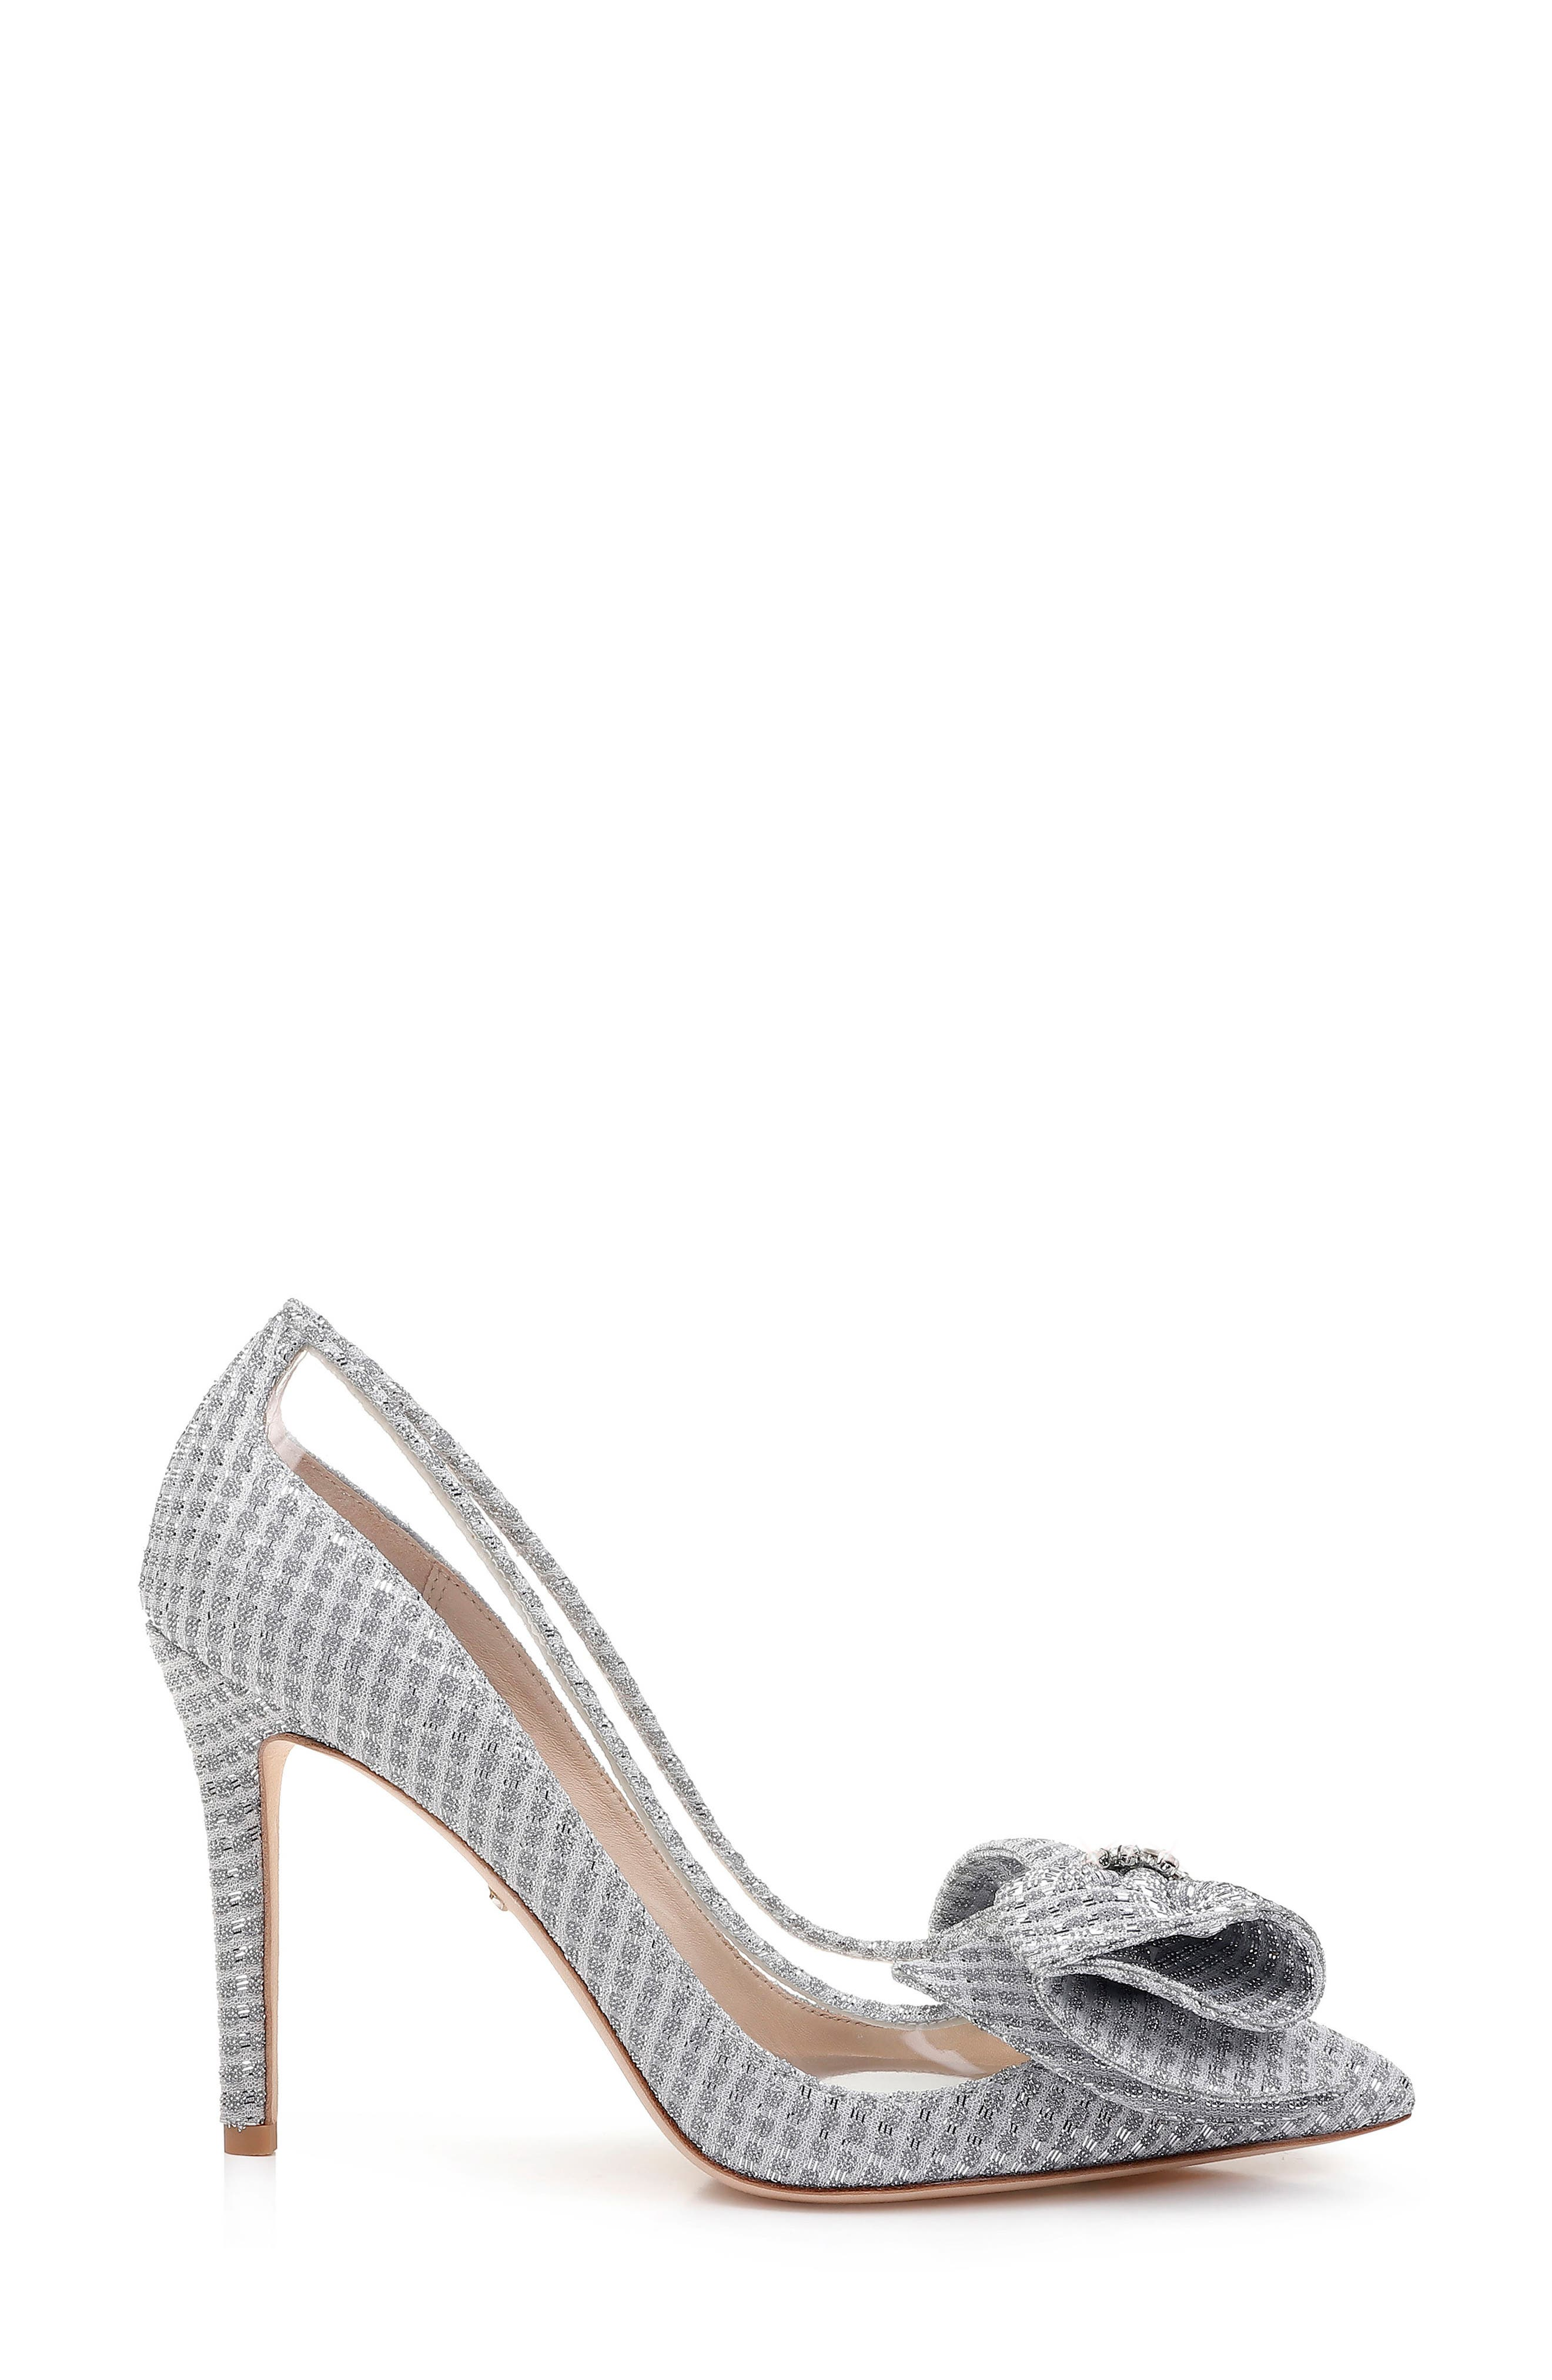 BADGLEY MISCHKA COLLECTION, Badgley Mischka Frances Bow Pump, Alternate thumbnail 3, color, SILVER GLITTER FABRIC